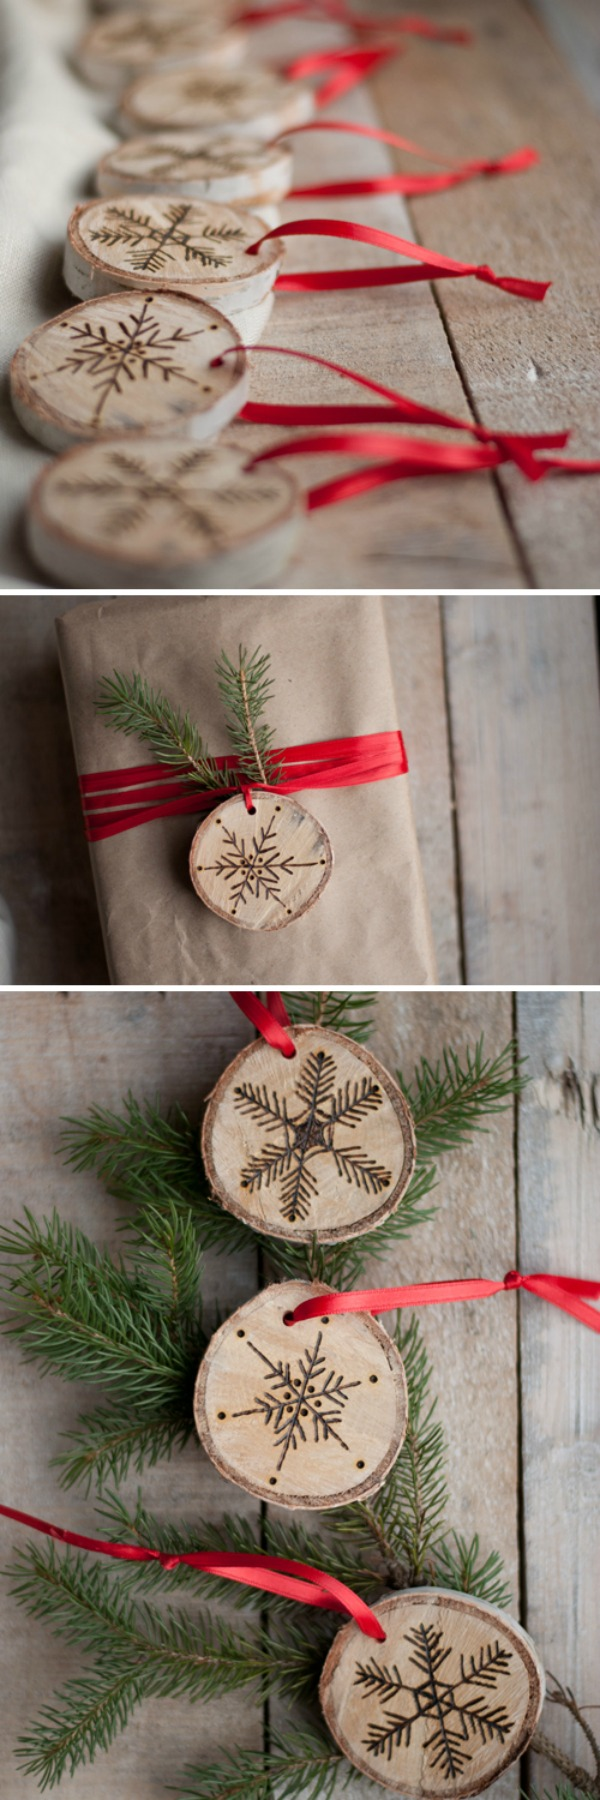 Etched-Birch-Ornaments-10